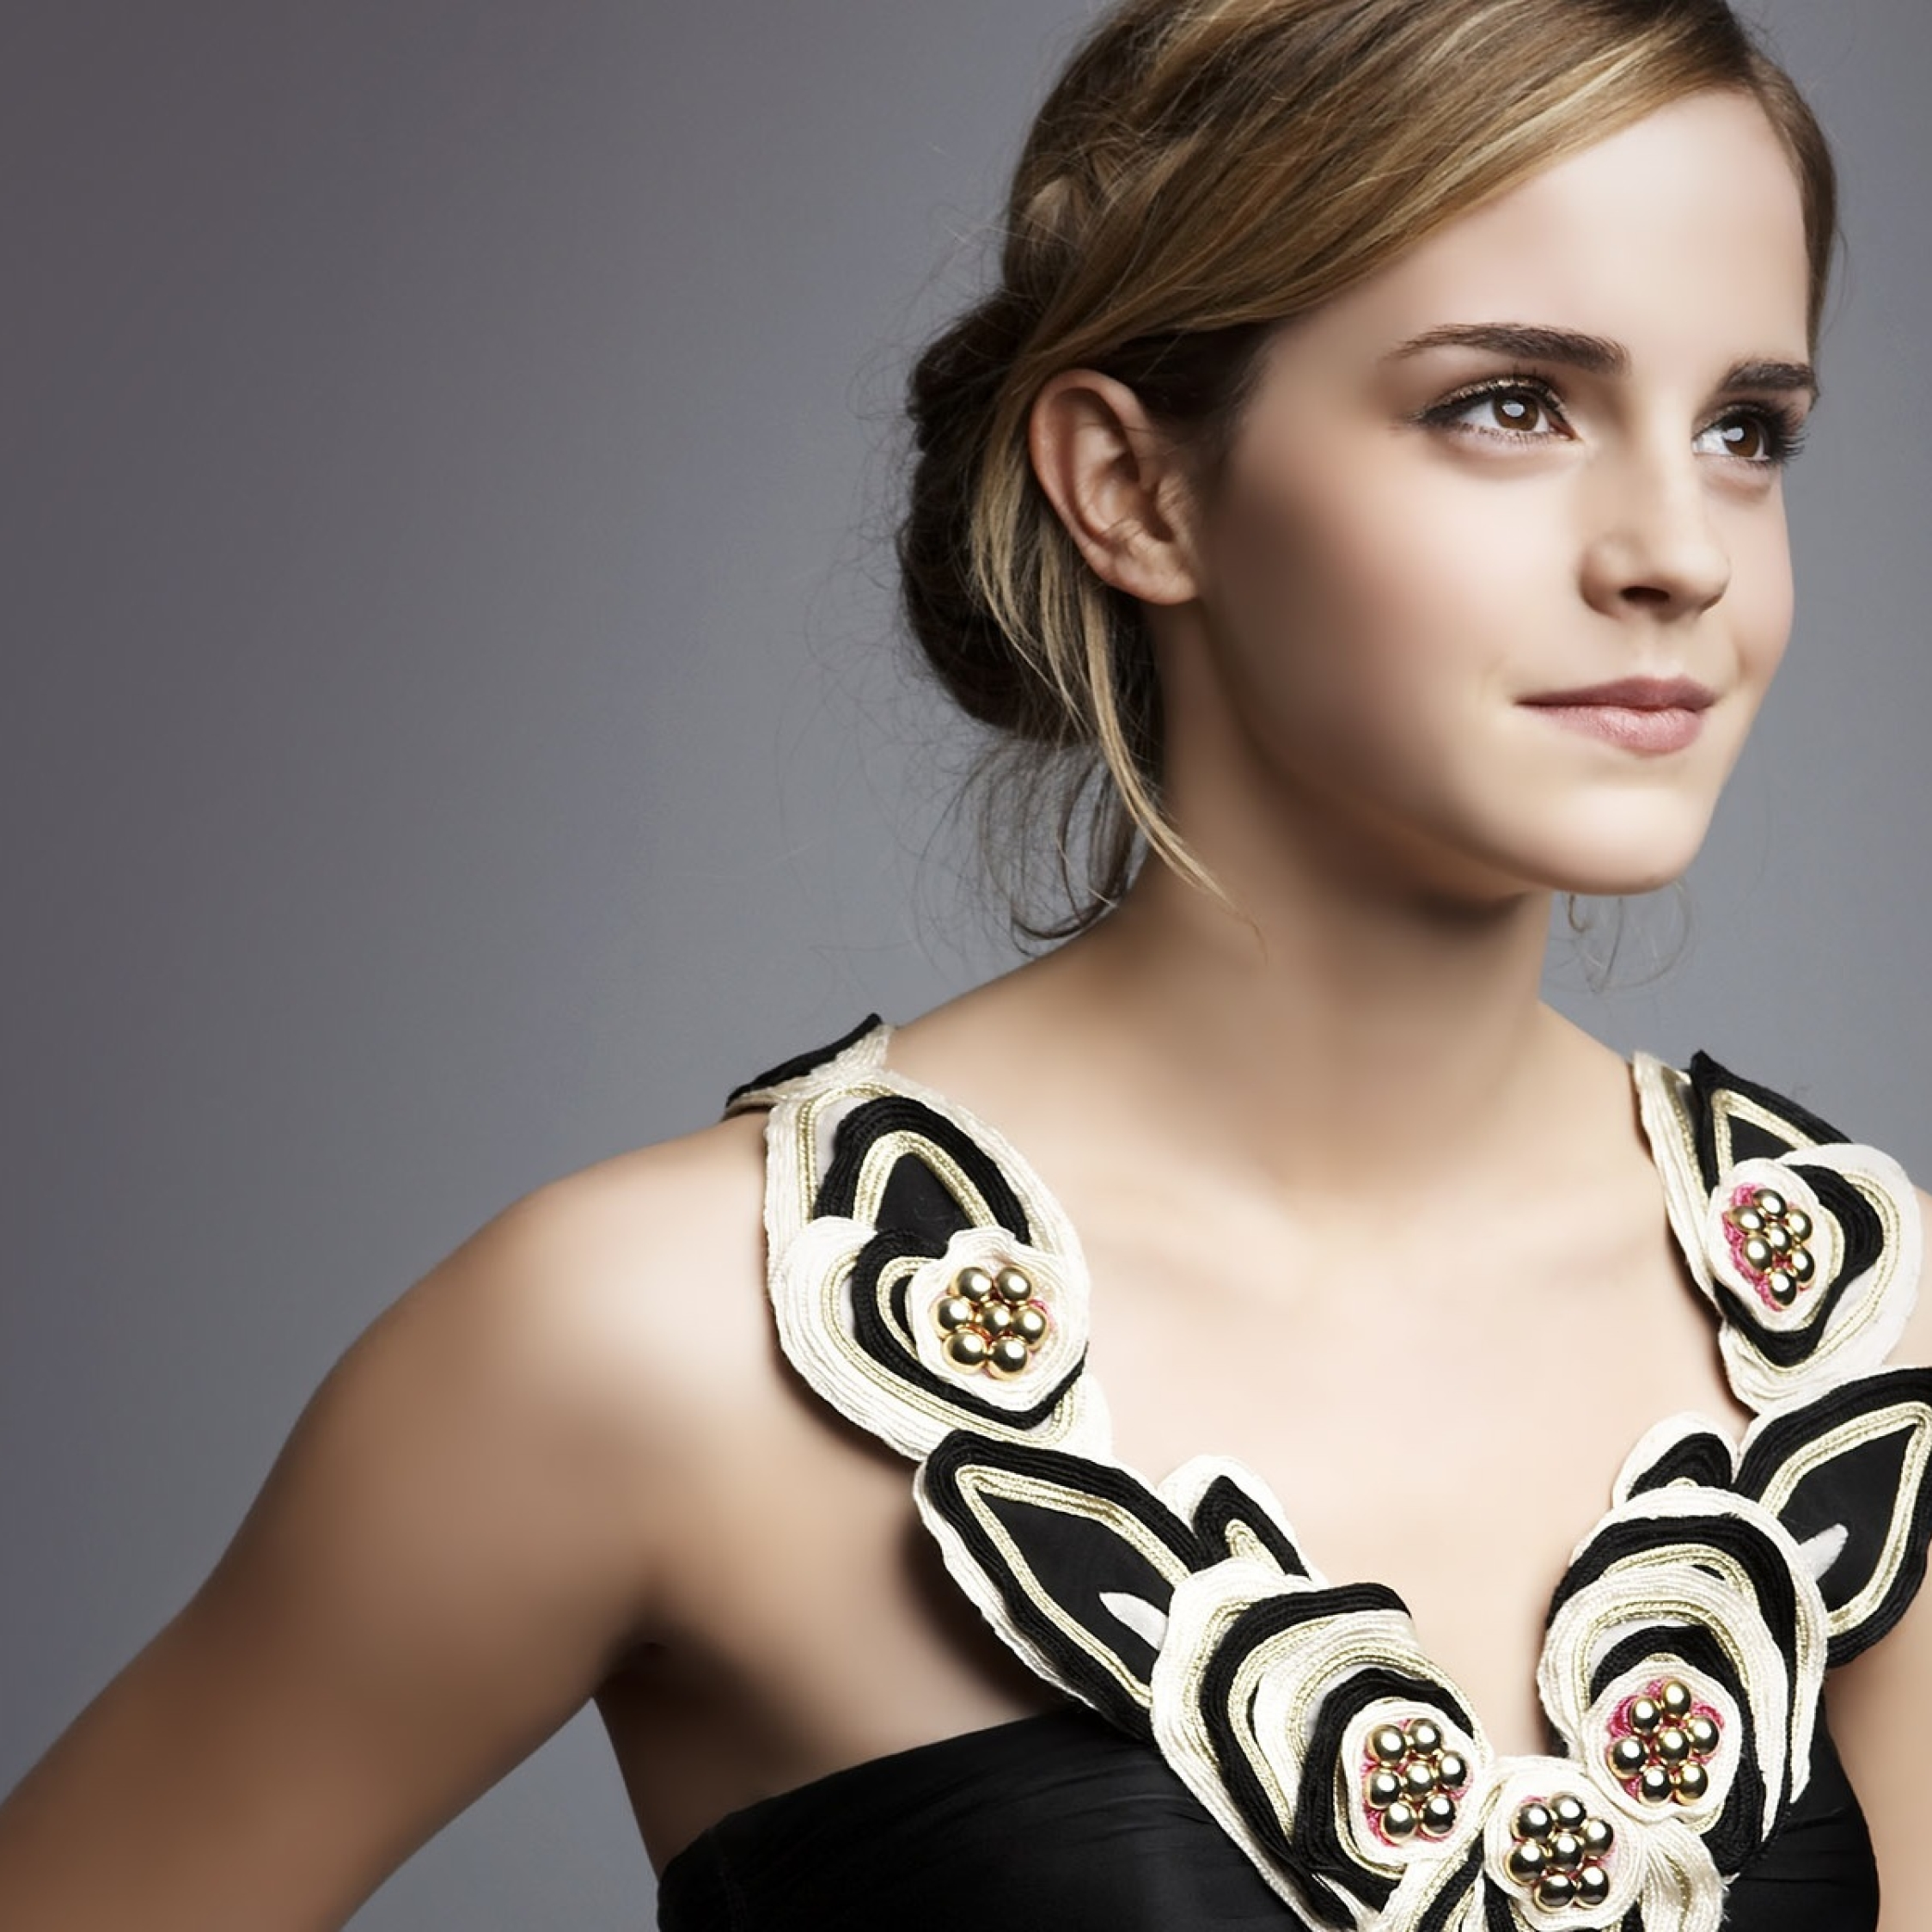 Download emma watson smile pose 540x960 resolution full - Emma watson wallpaper free download ...